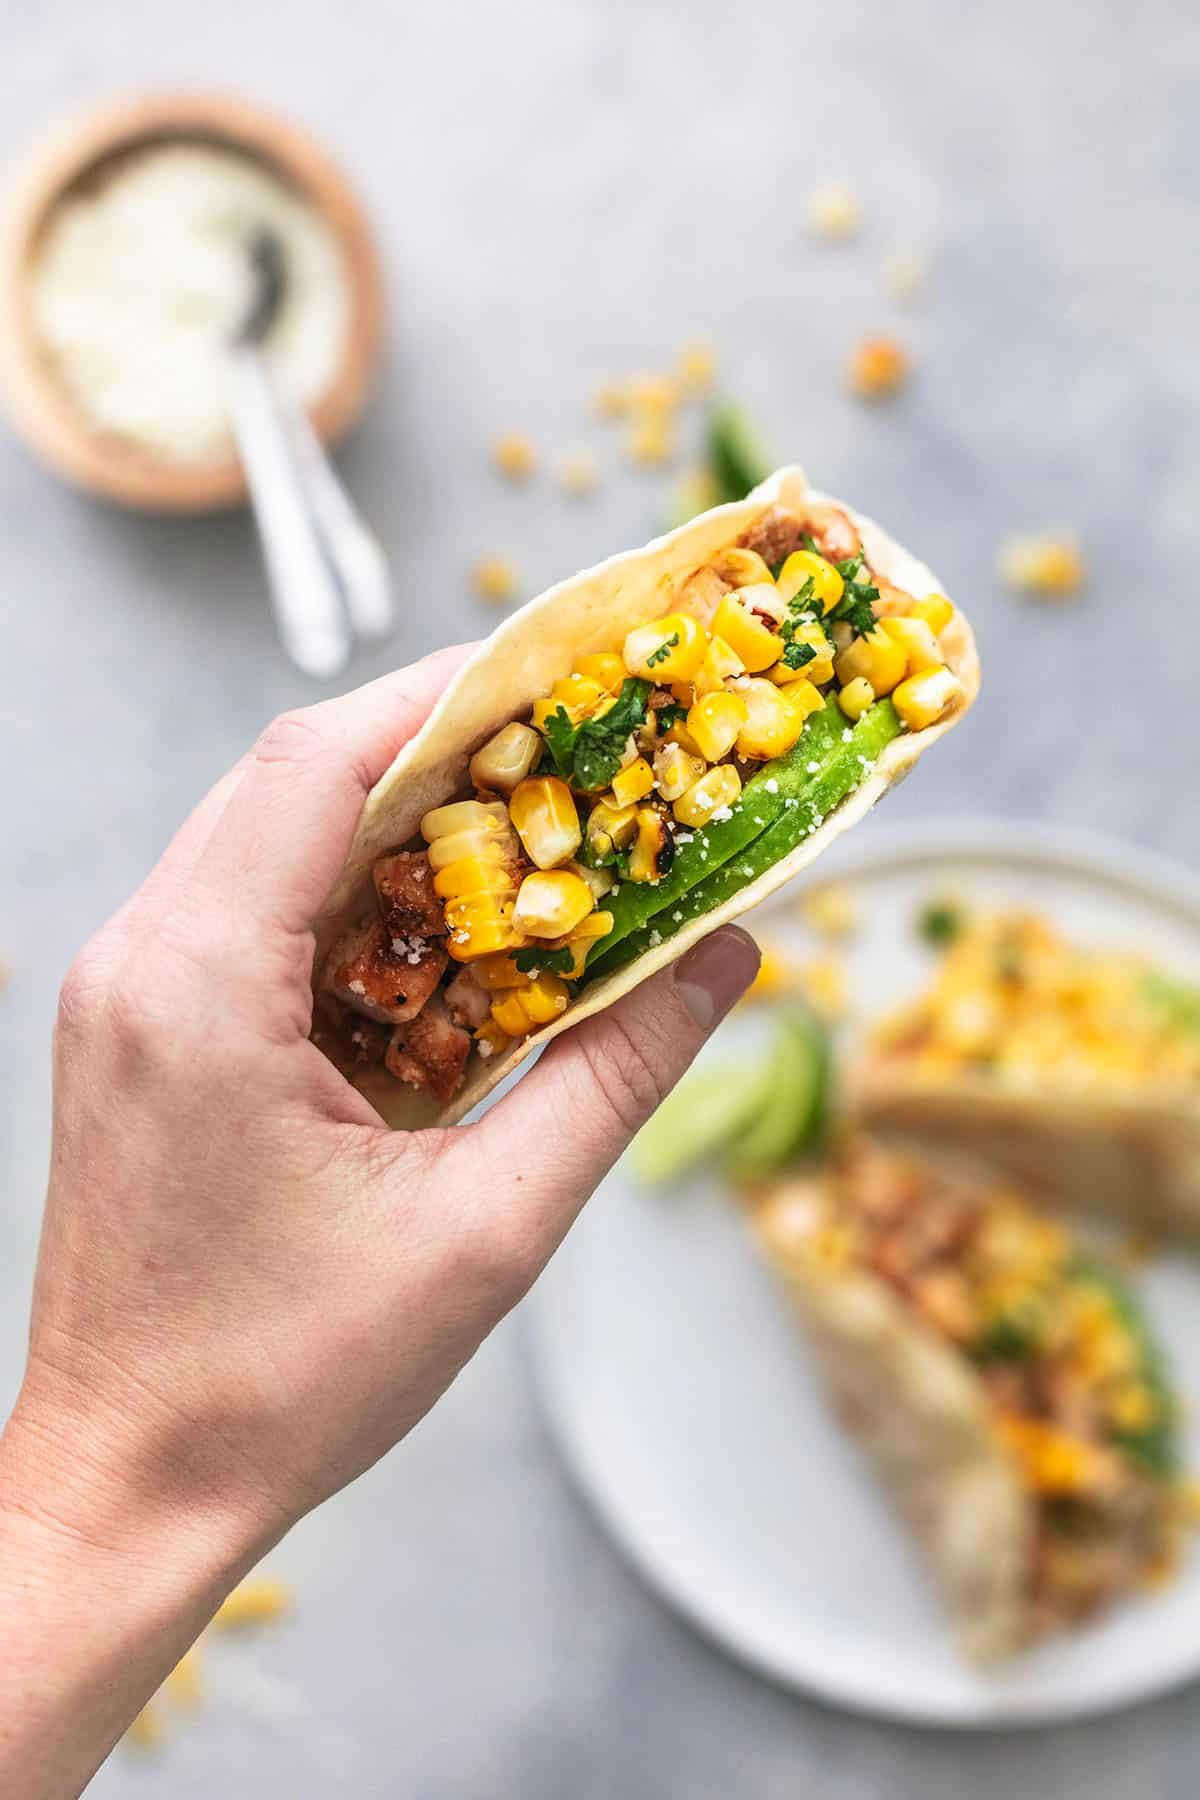 hand holding single tortilla with chicken and topped with corn and avocado